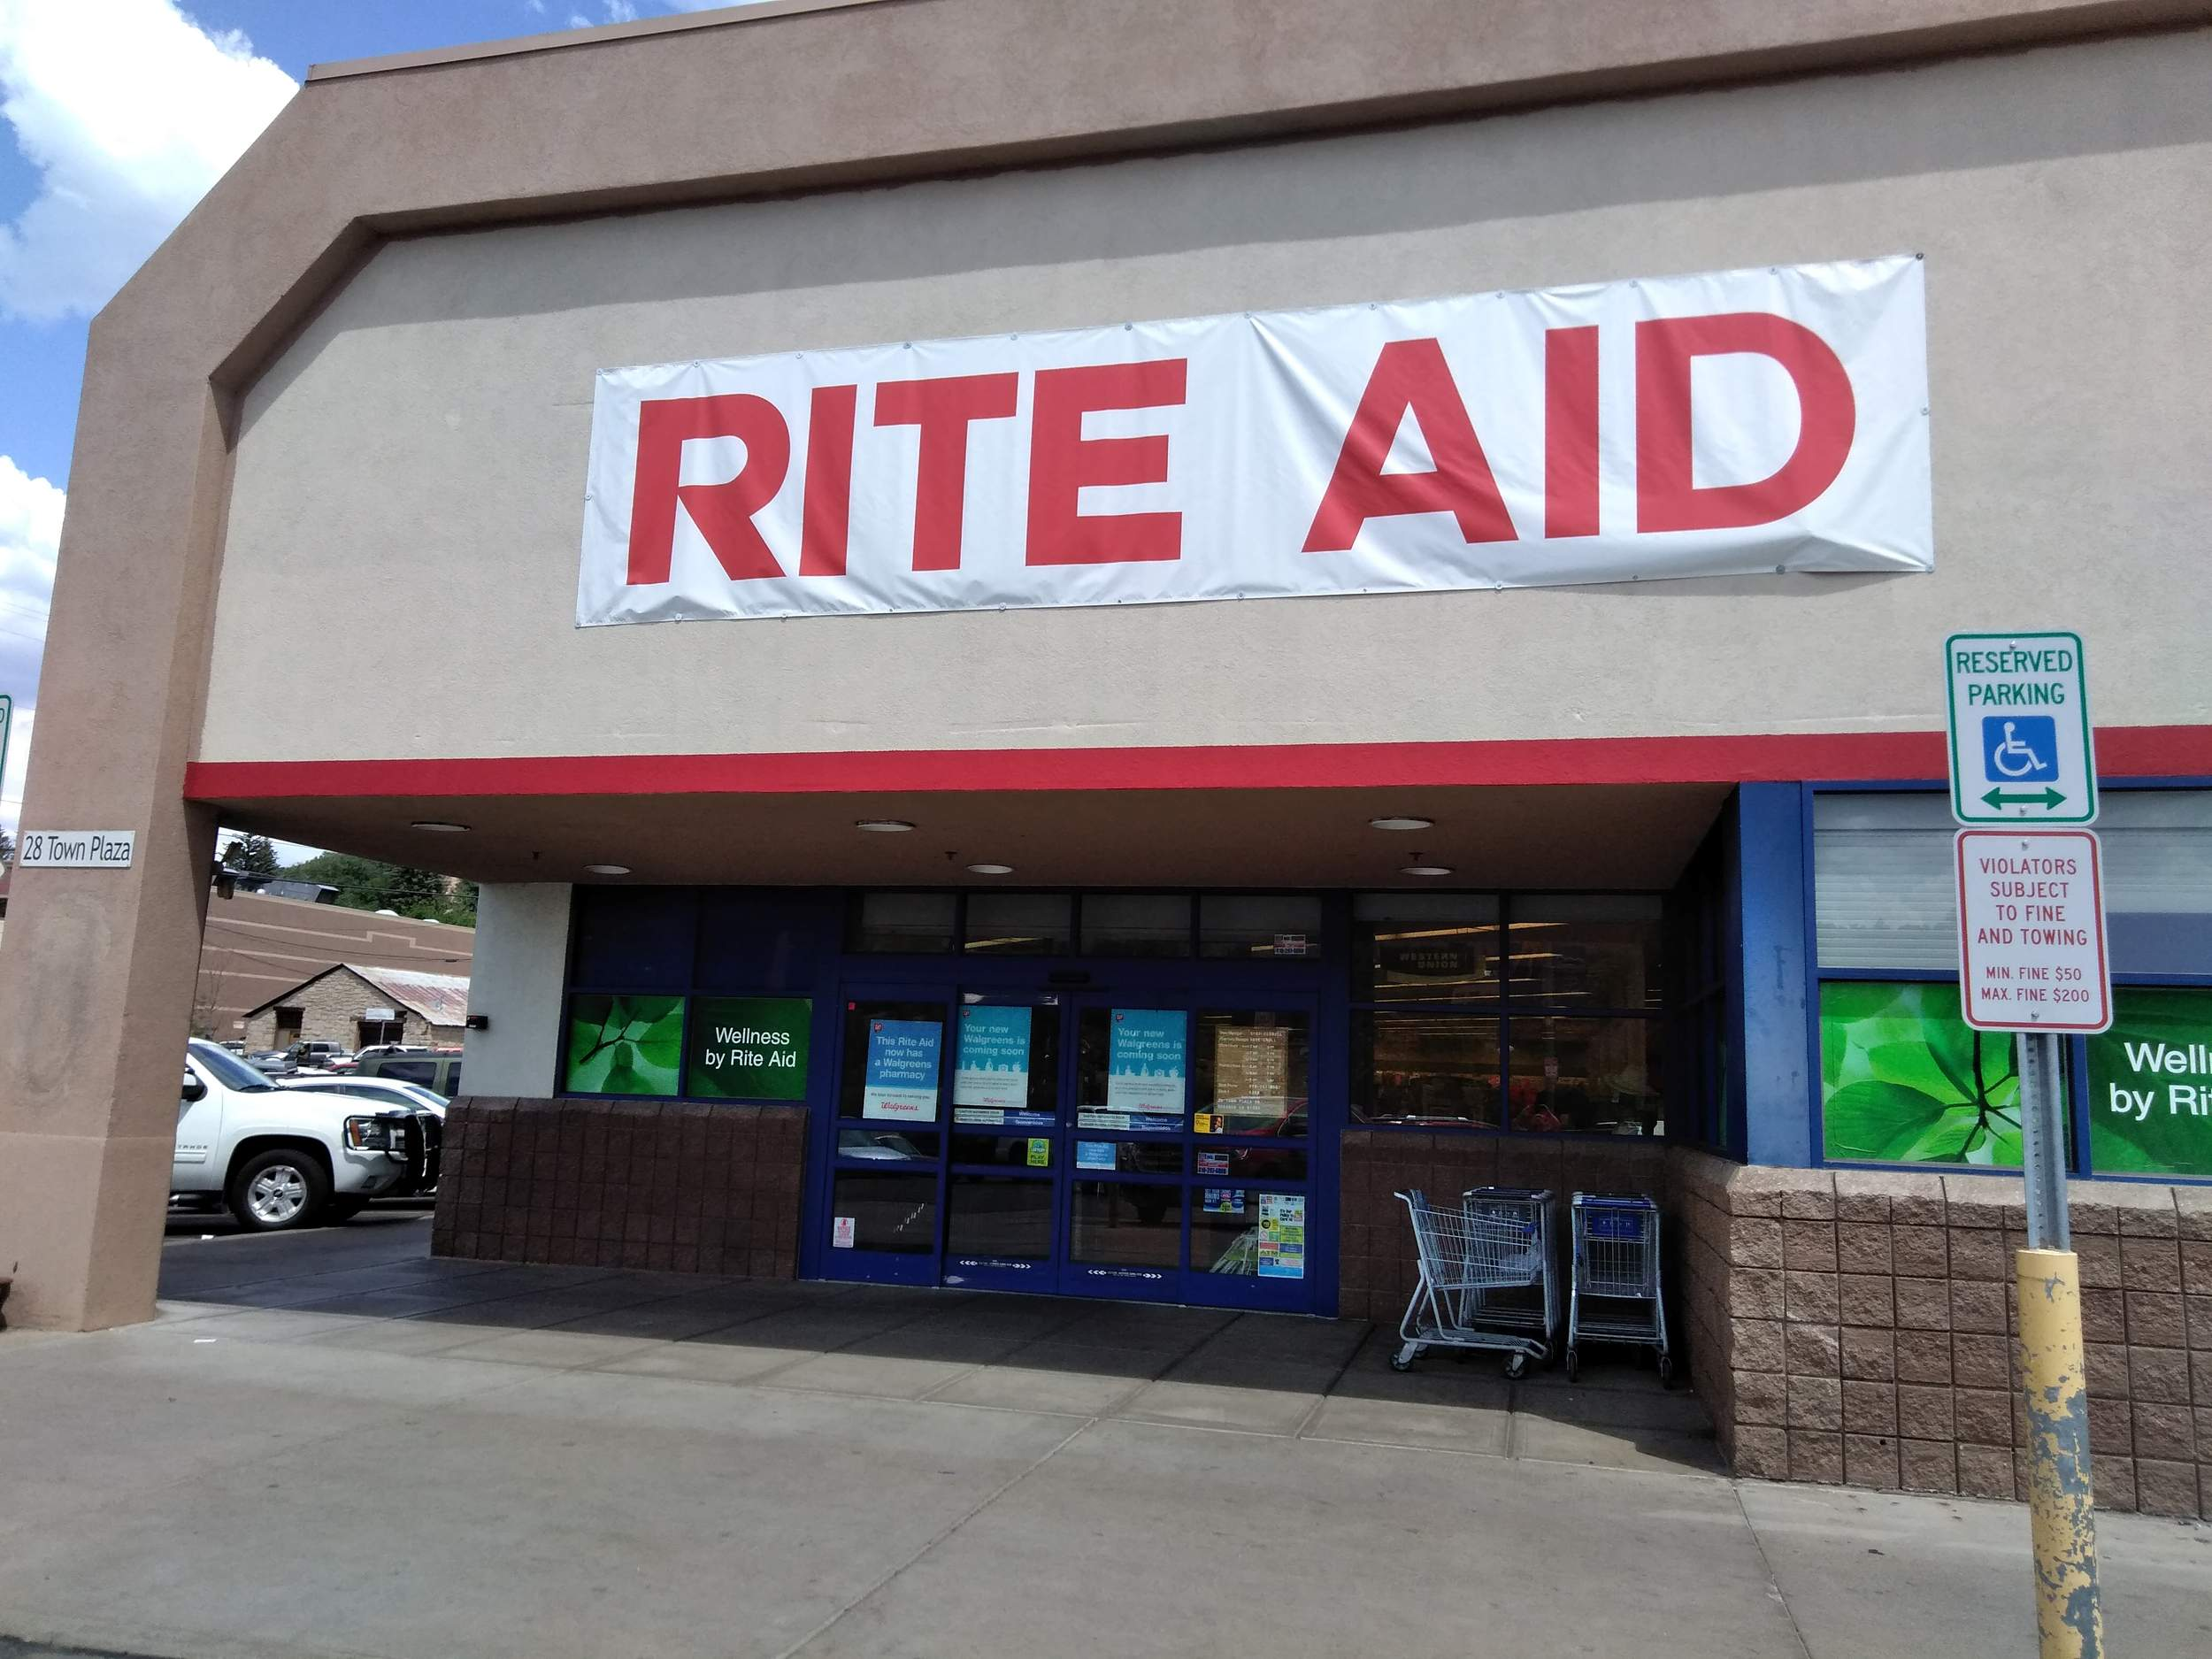 rite aid in durango to become a walgreens